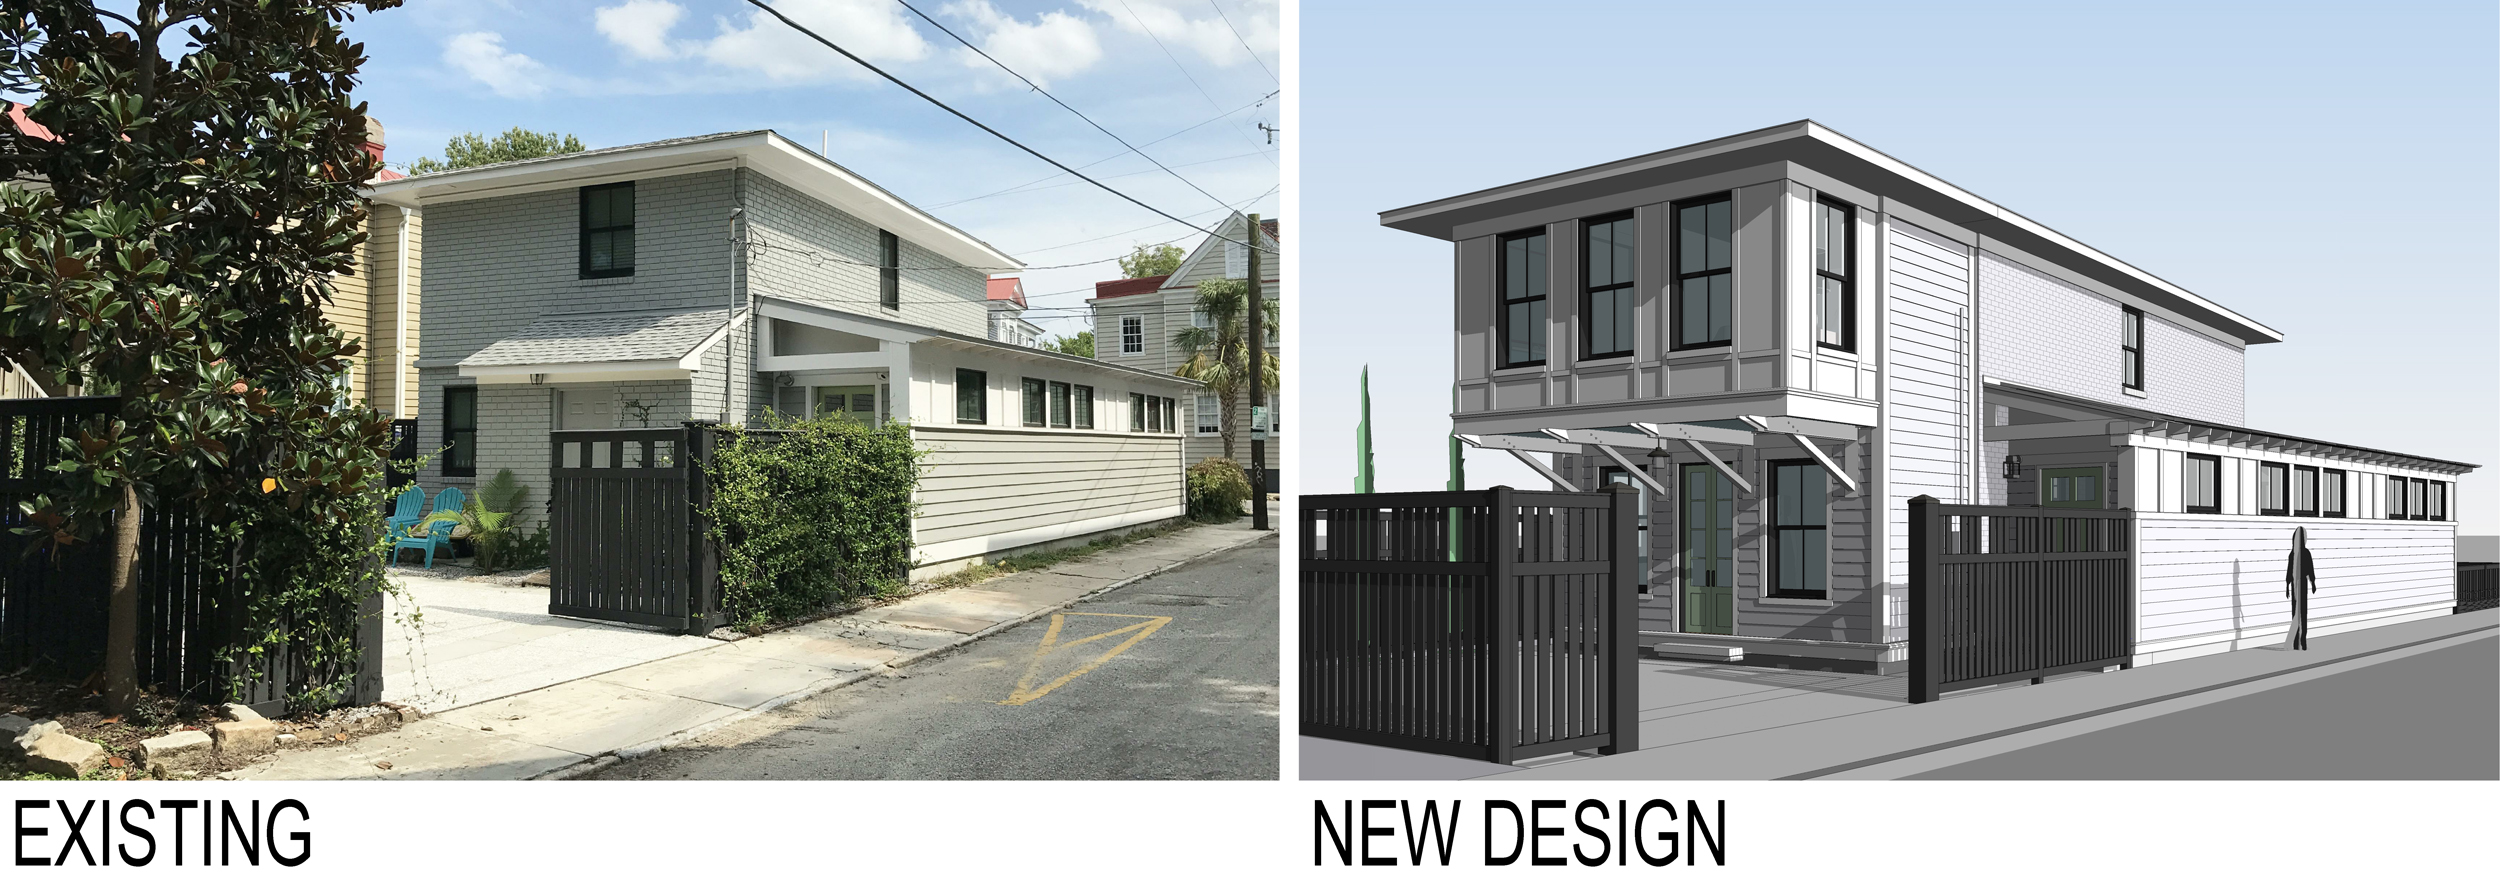 Image on left is the back of our house.  The image on the right is a 3D drawing of the new addition which is about to begin construction.